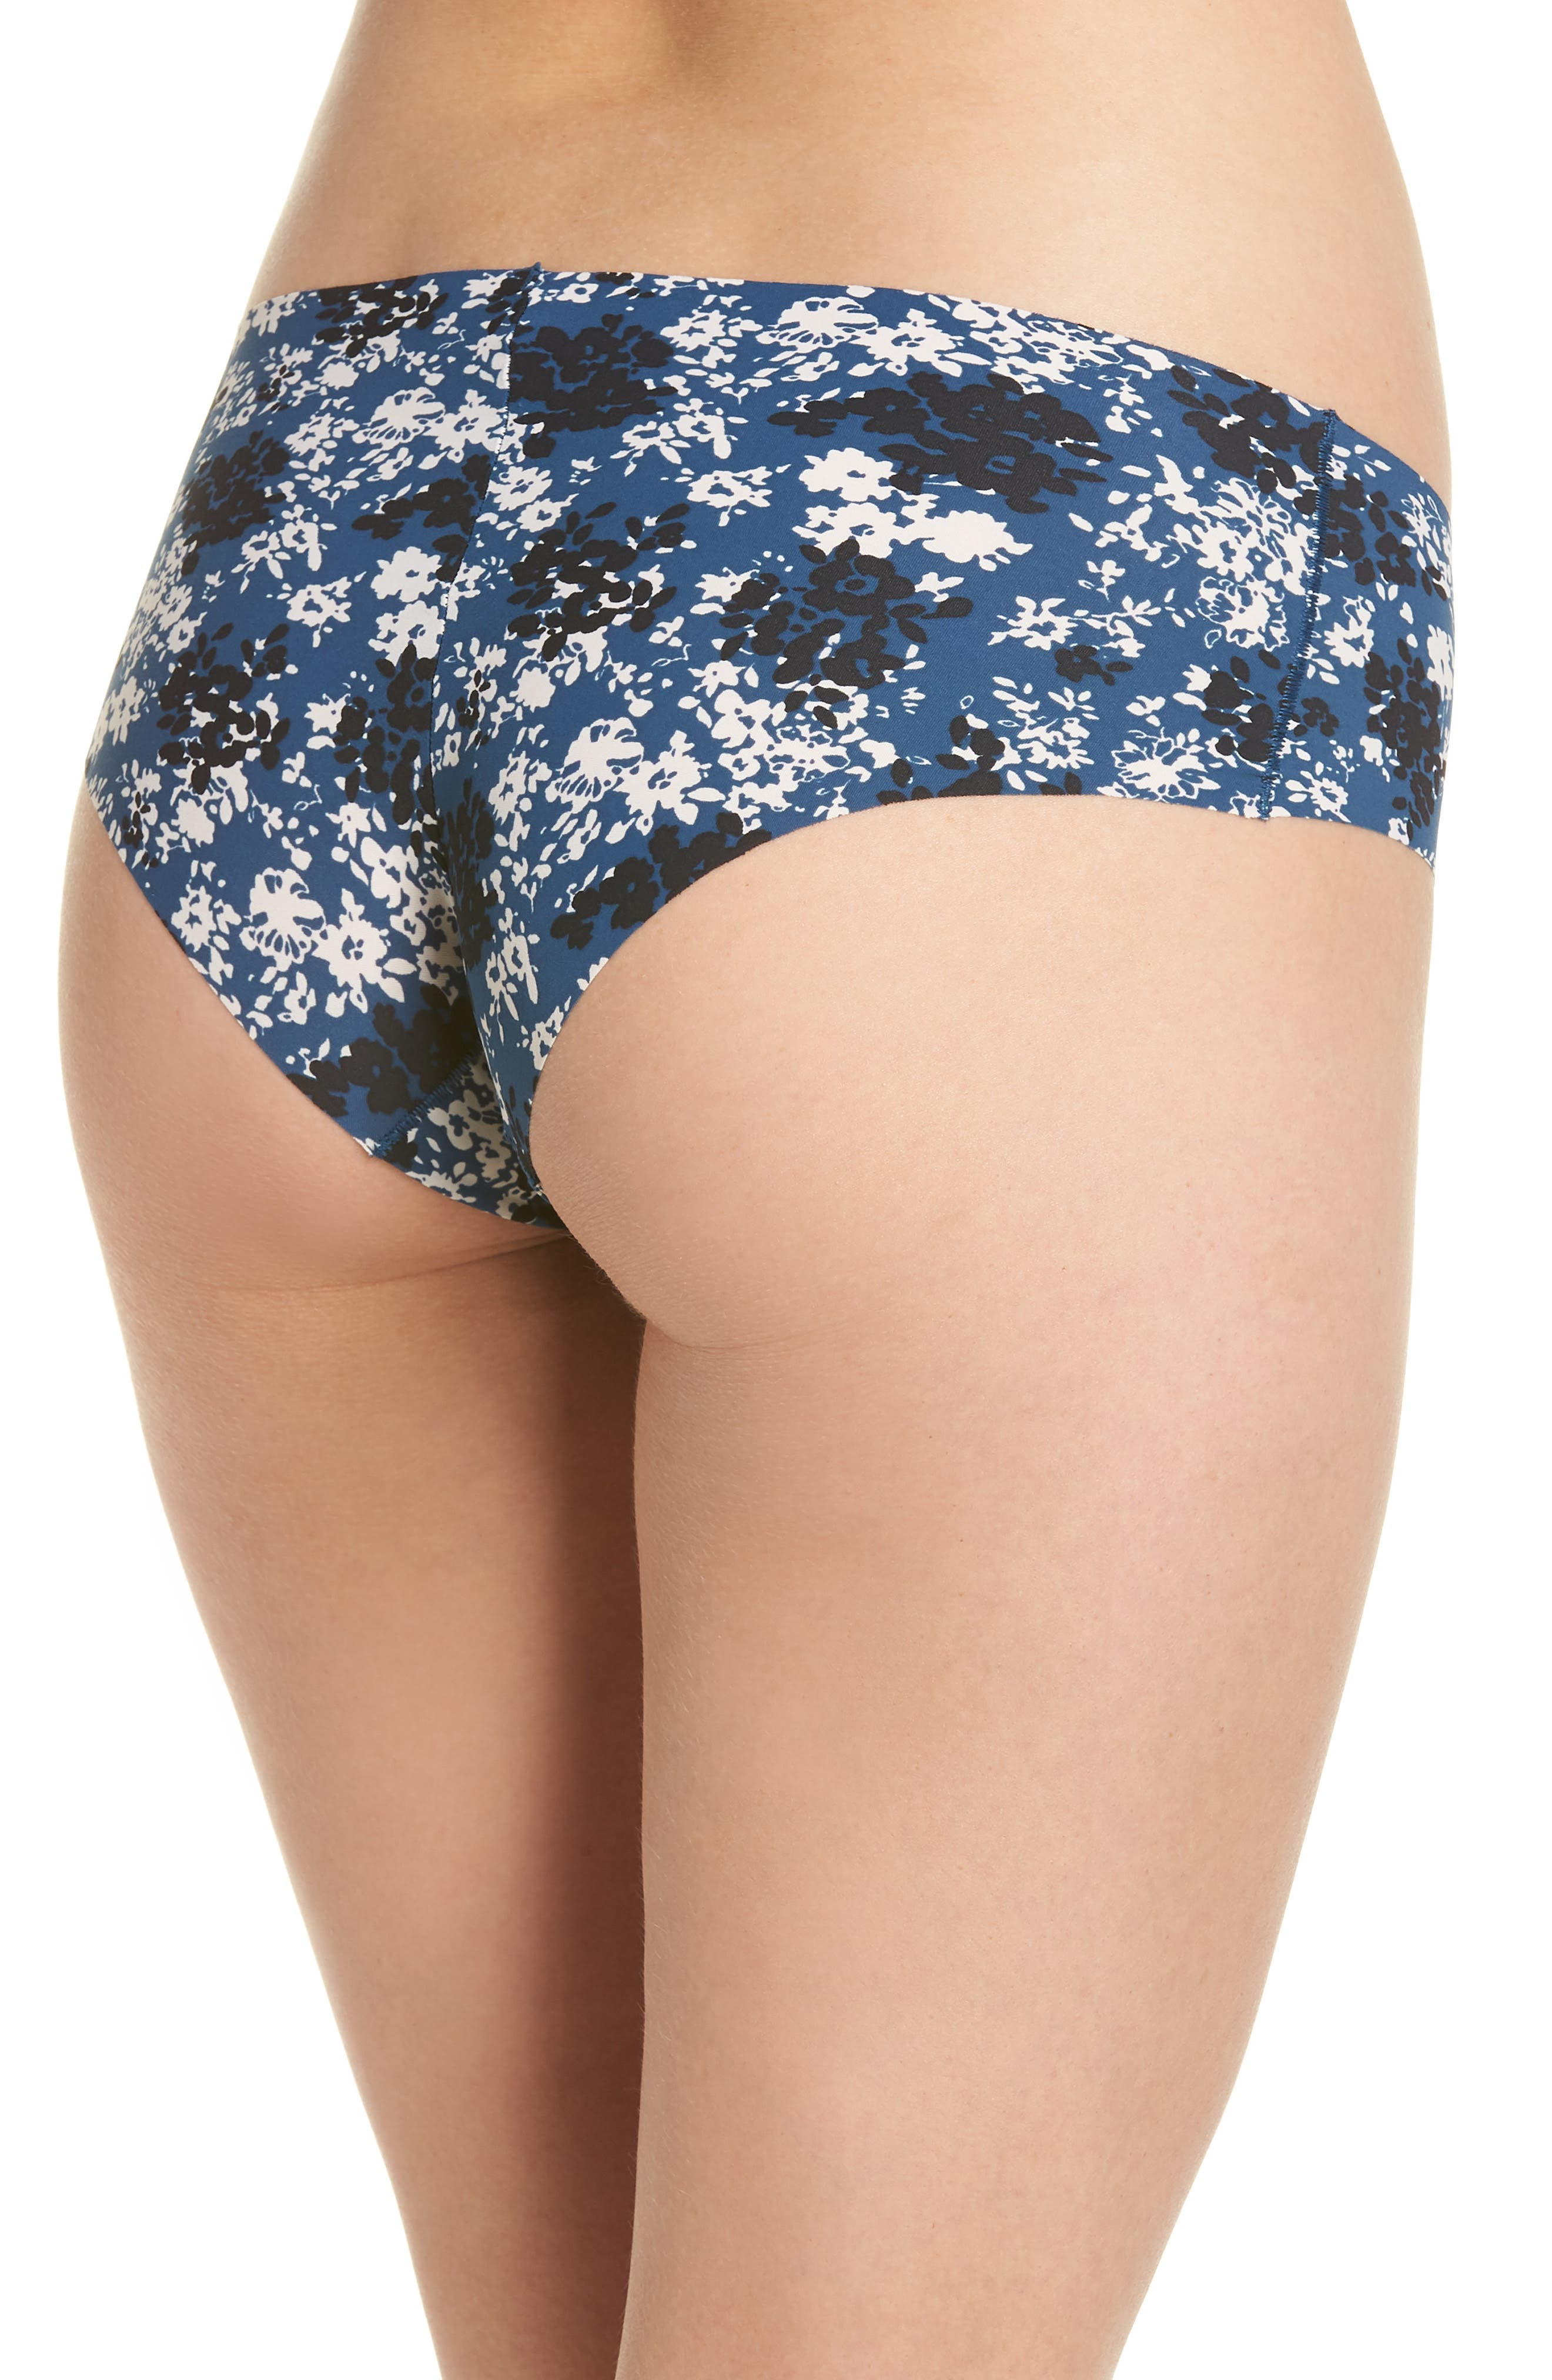 Invisibles Hipster Briefs,                             Alternate thumbnail 2, color,                             SIMPLE FLORAL/ LYRIA BLUE